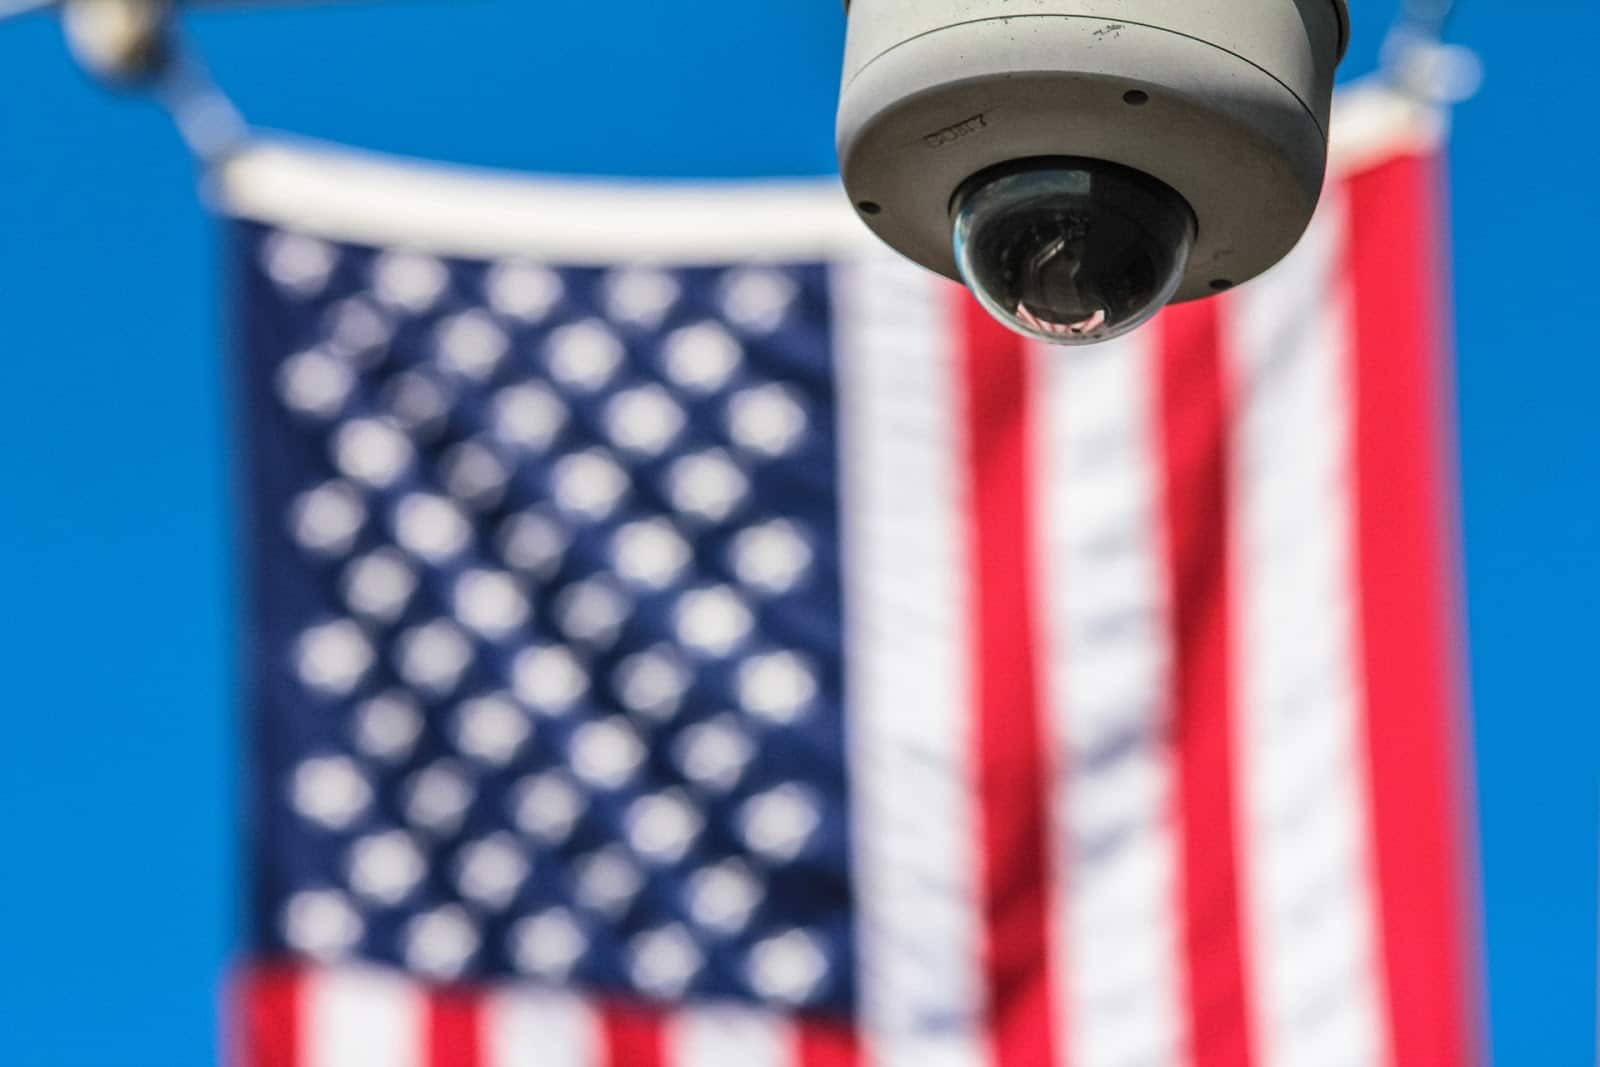 security camera in front of American flag